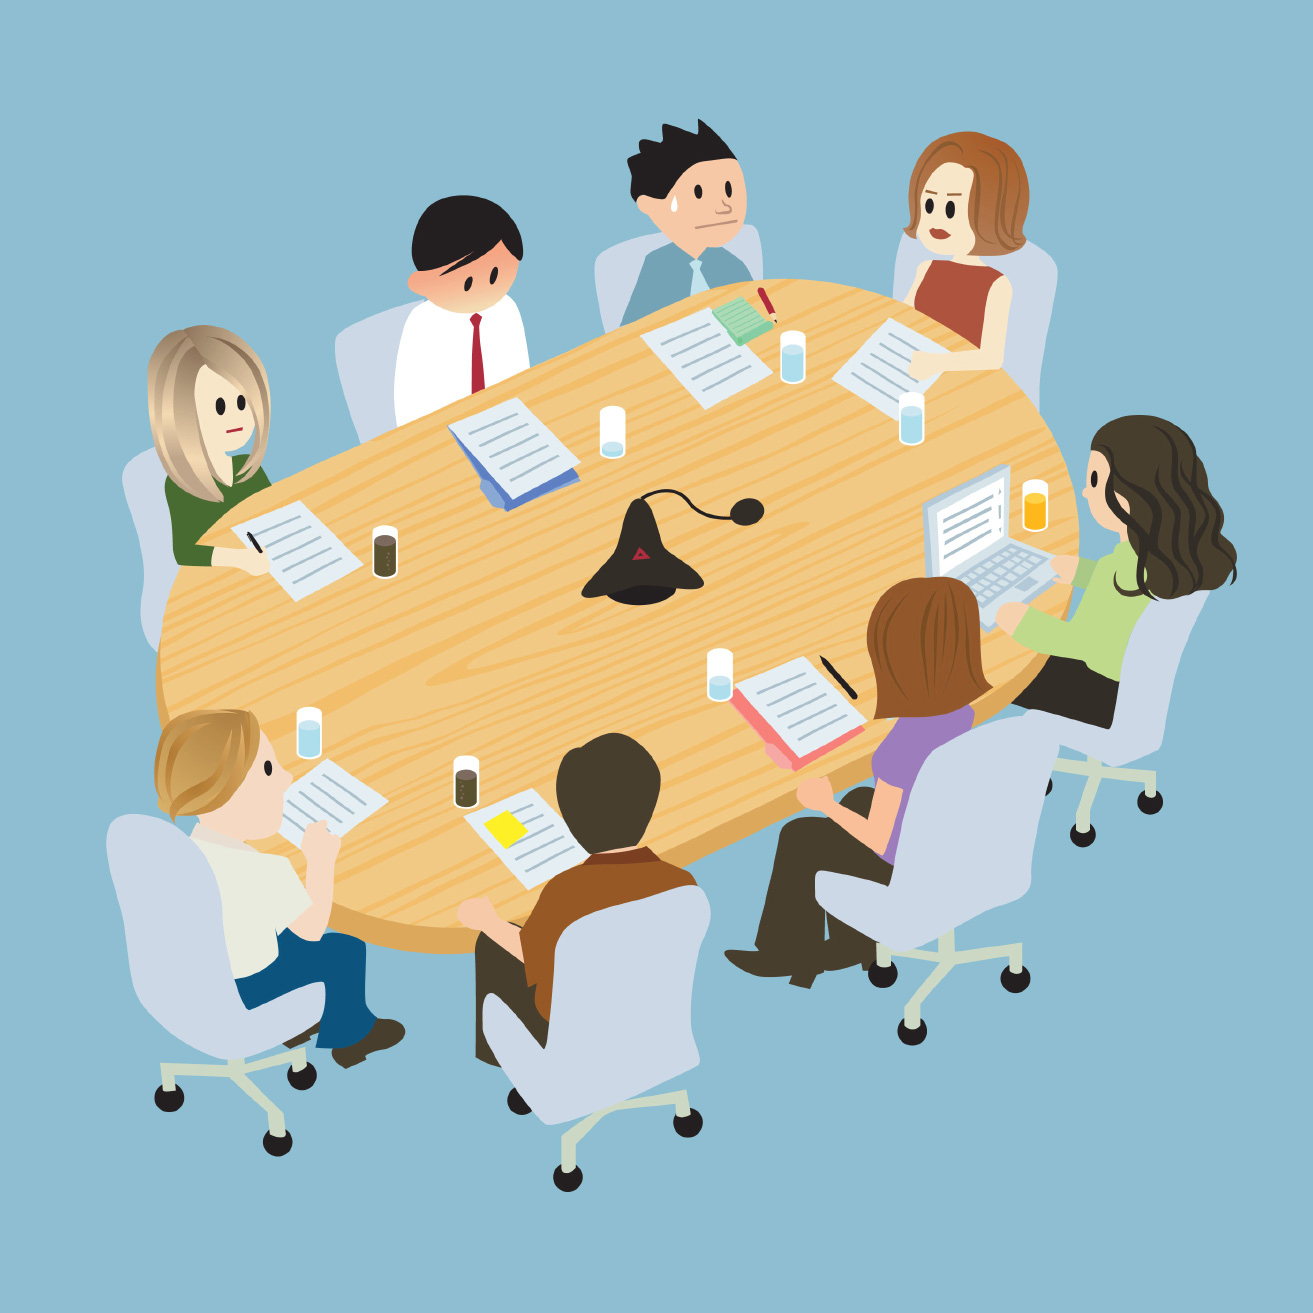 how to prepare meetings online